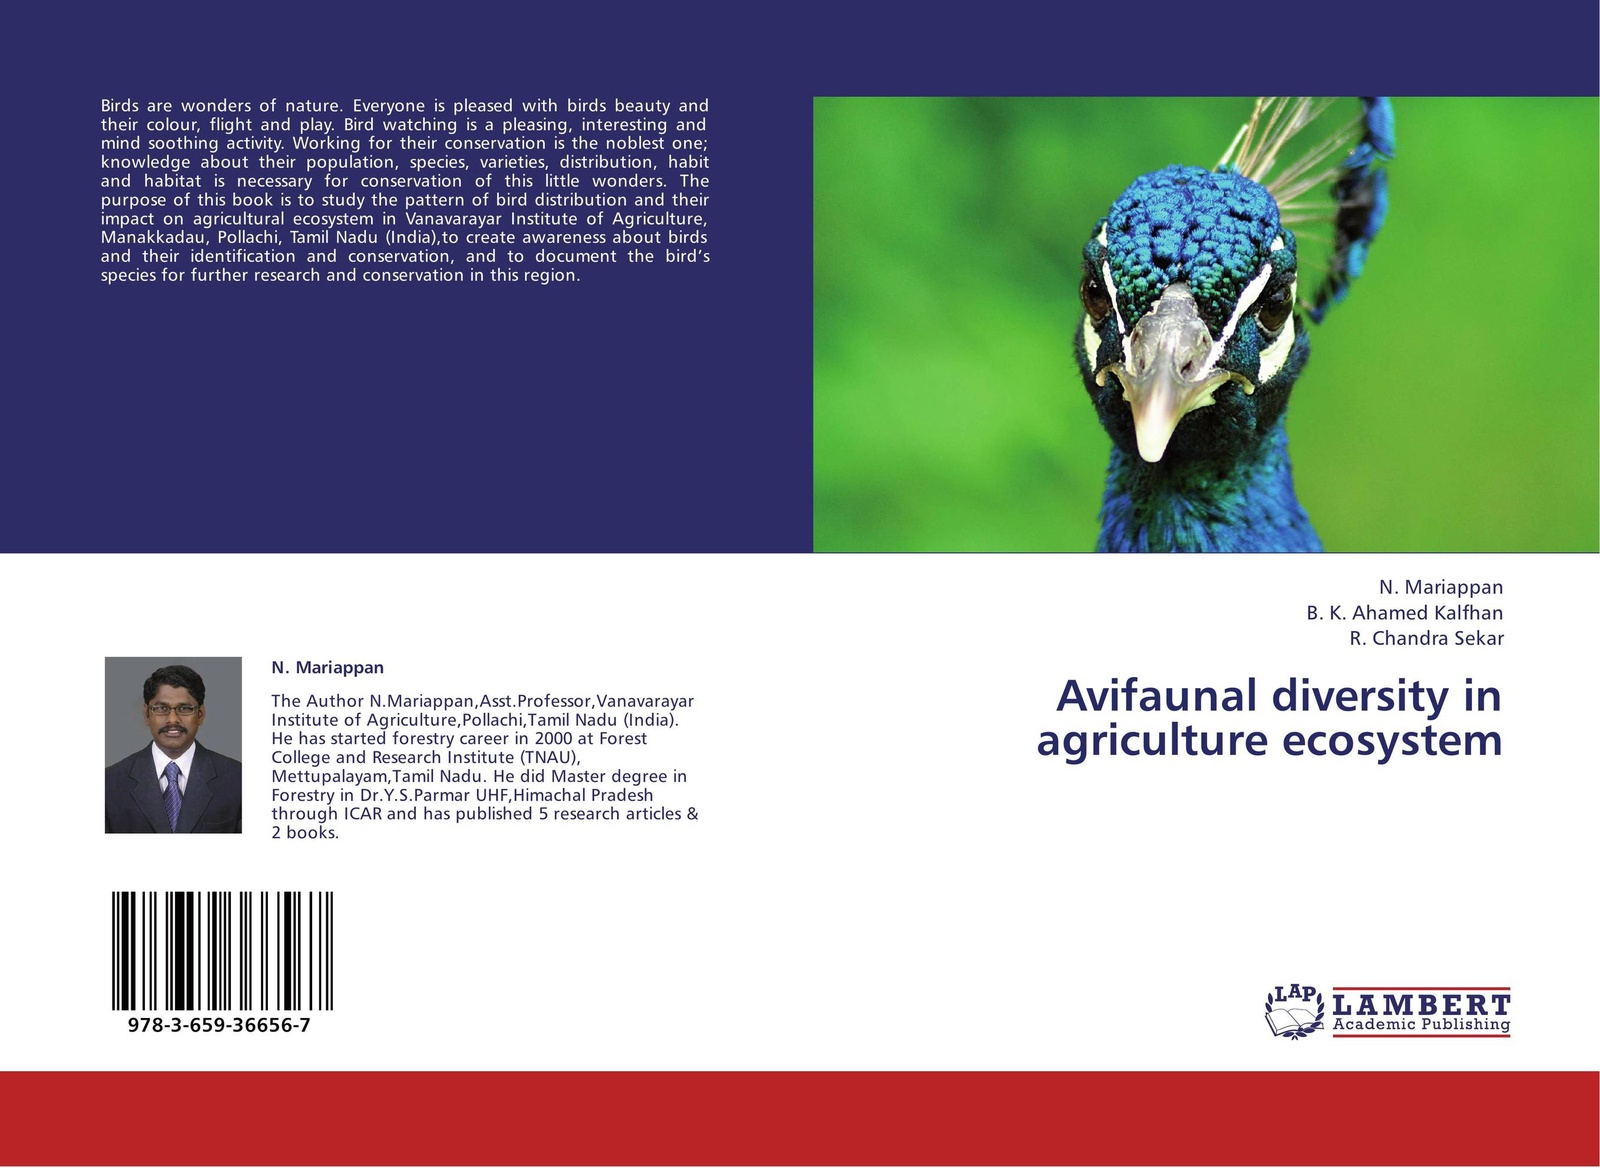 N. Mariappan,B. K. Ahamed Kalfhan and R. Chandra Sekar Avifaunal diversity in agriculture ecosystem conservation of swamp deer in terai grassland of northern india